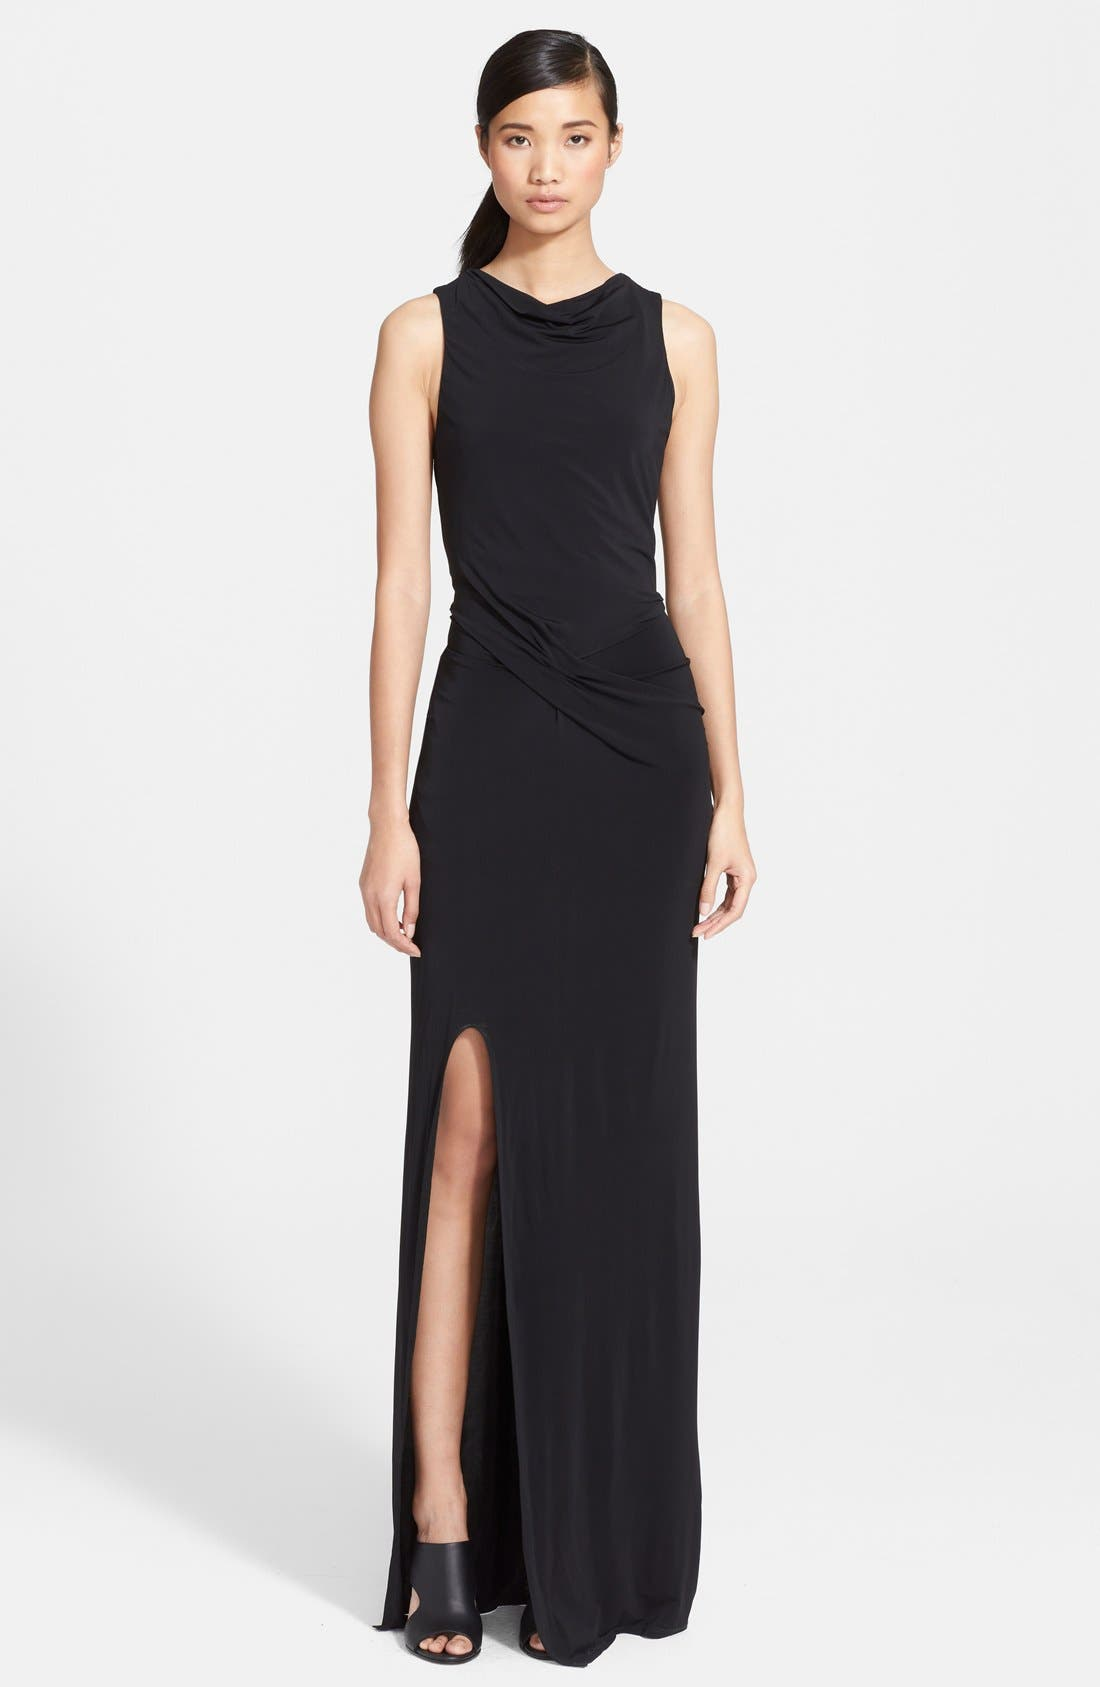 Alternate Image 1 Selected - Helmut Lang Cutout Back Maxi Dress